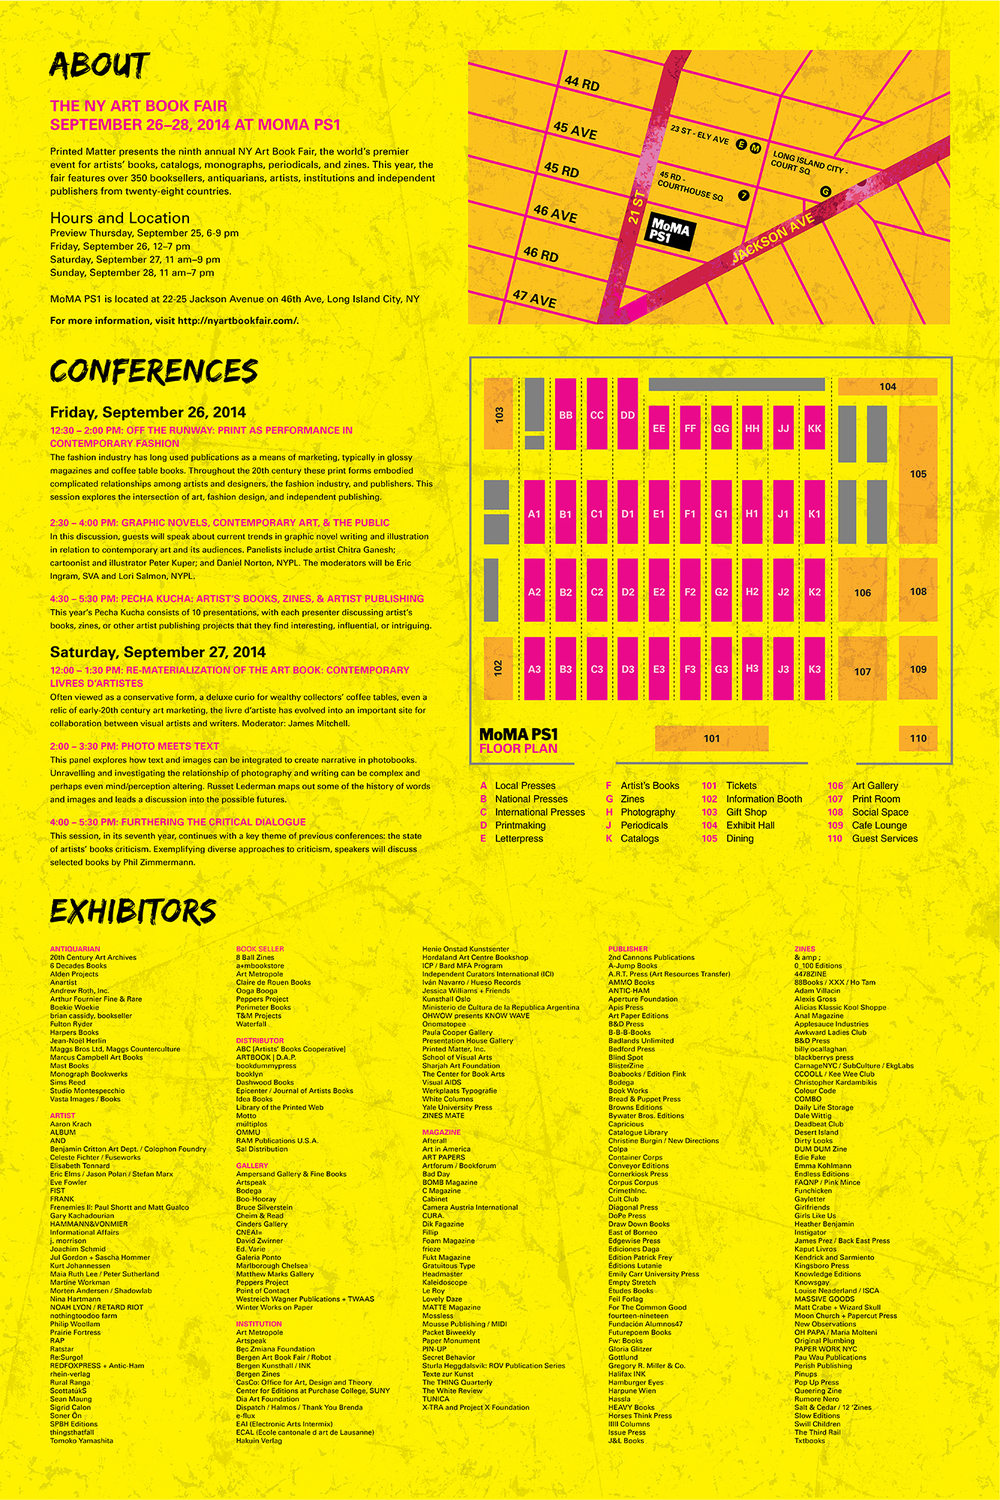 NYARTBOOKFAIR_POSTER_final2.jpg